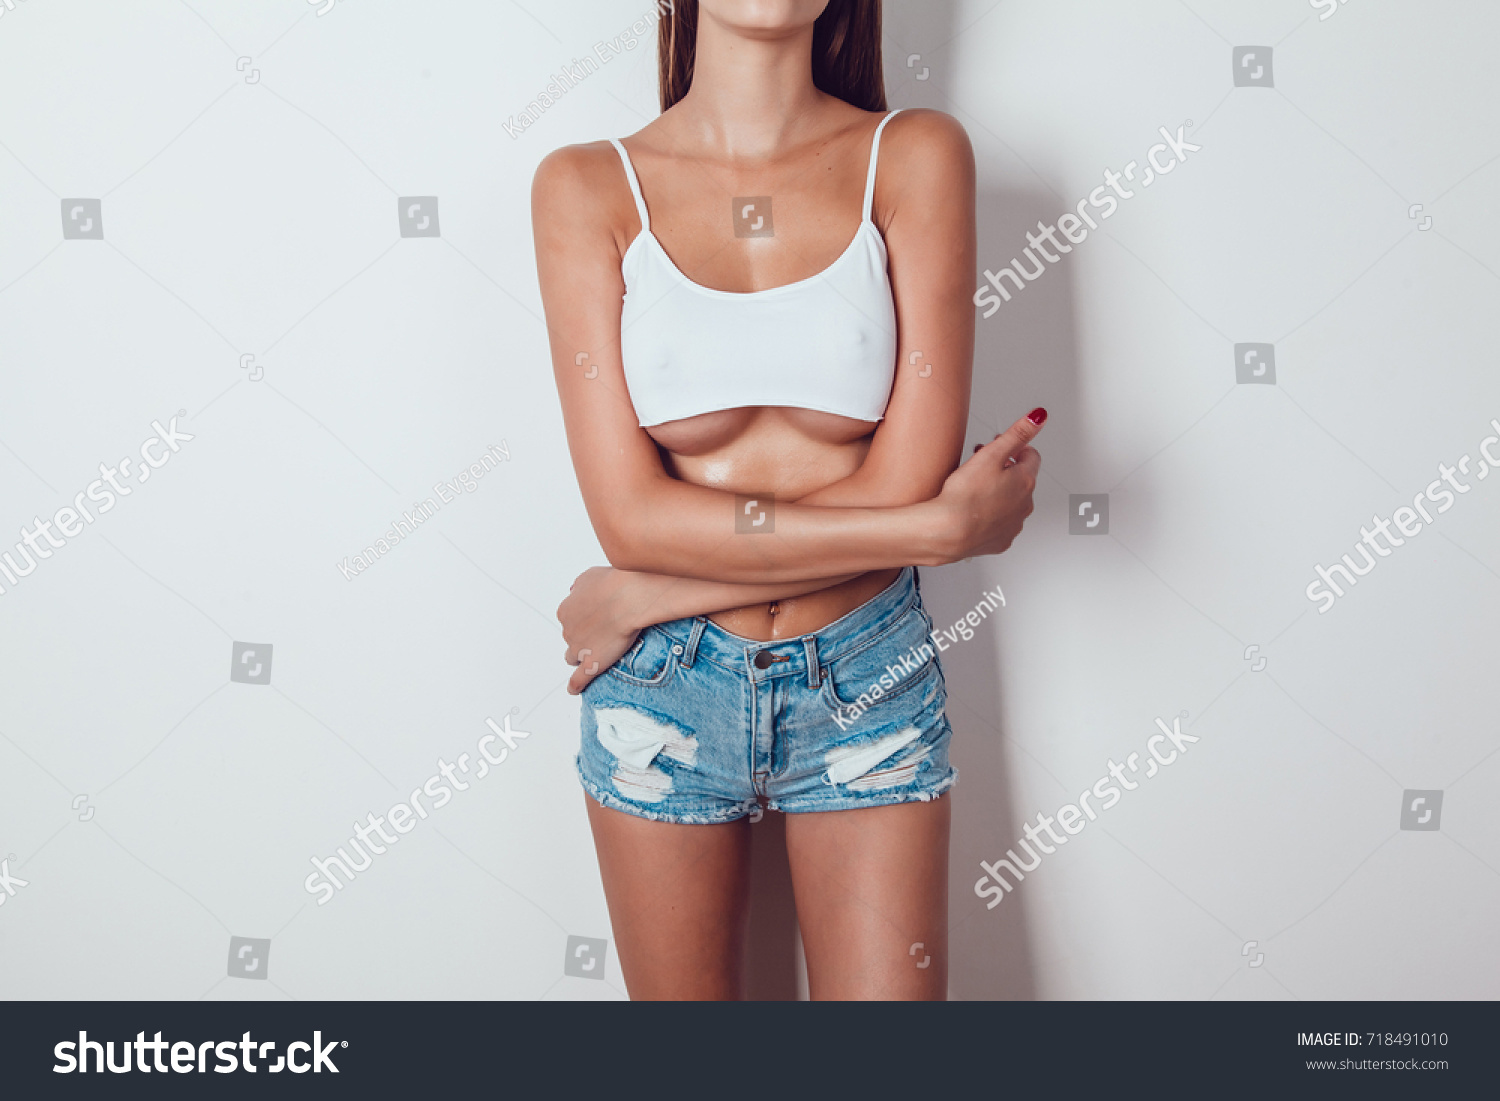 Body of a girl with big breasts with big breasts in a very short white tank